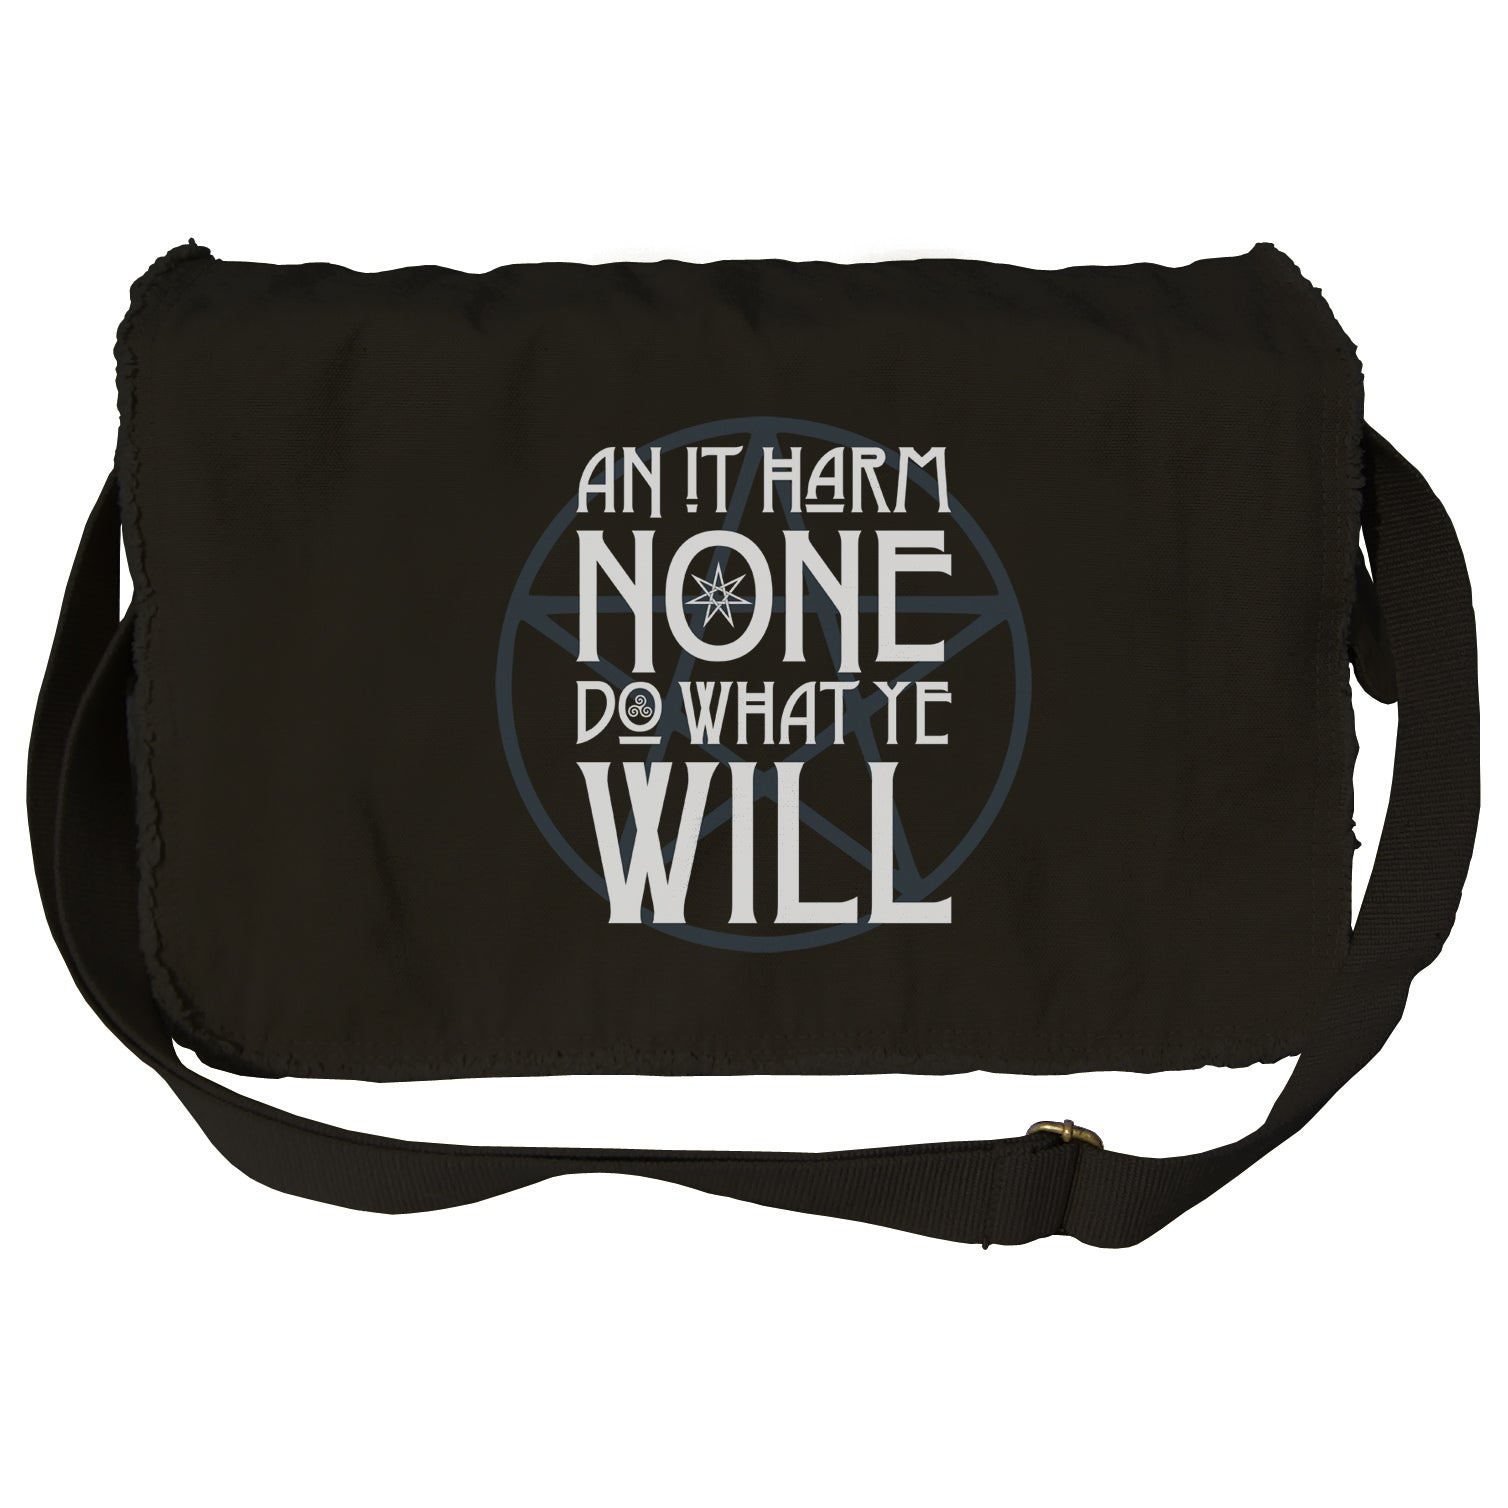 An it Harm None, Do What Ye Will Messenger Bag